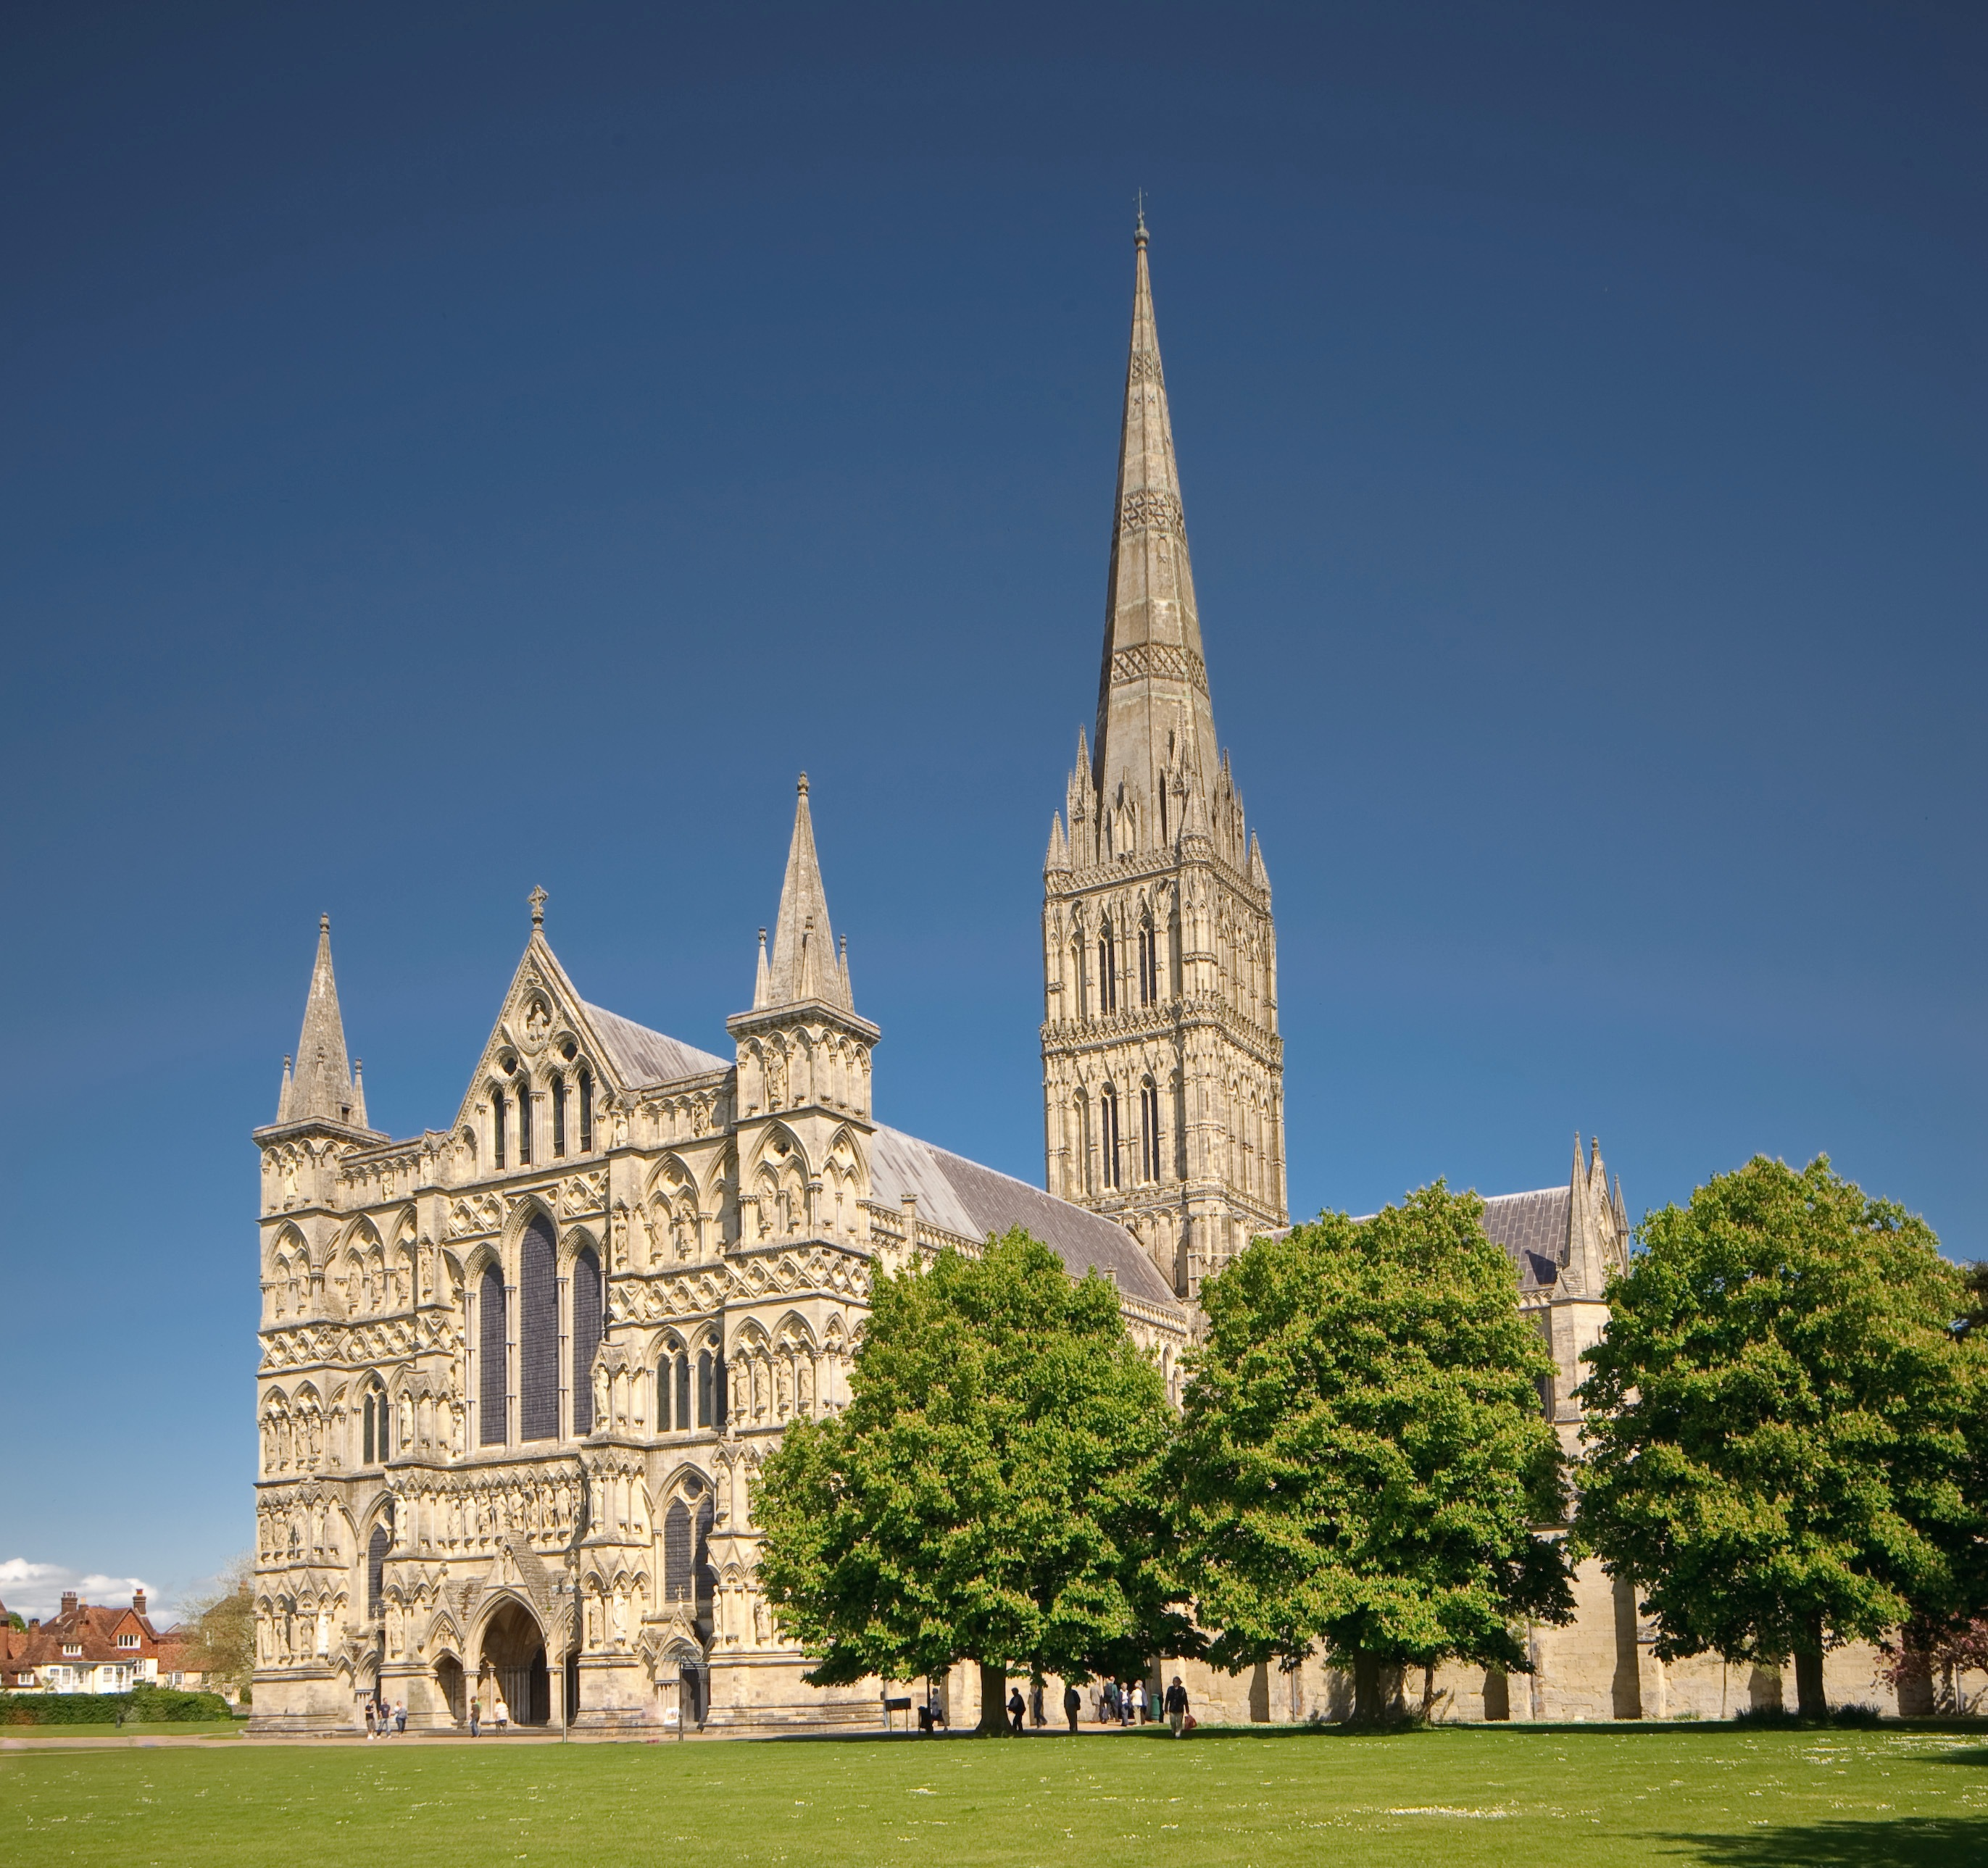 Salisbury Cathedral, the home of one of the four surviving Magna Carta manuscripts on display in the unification event.